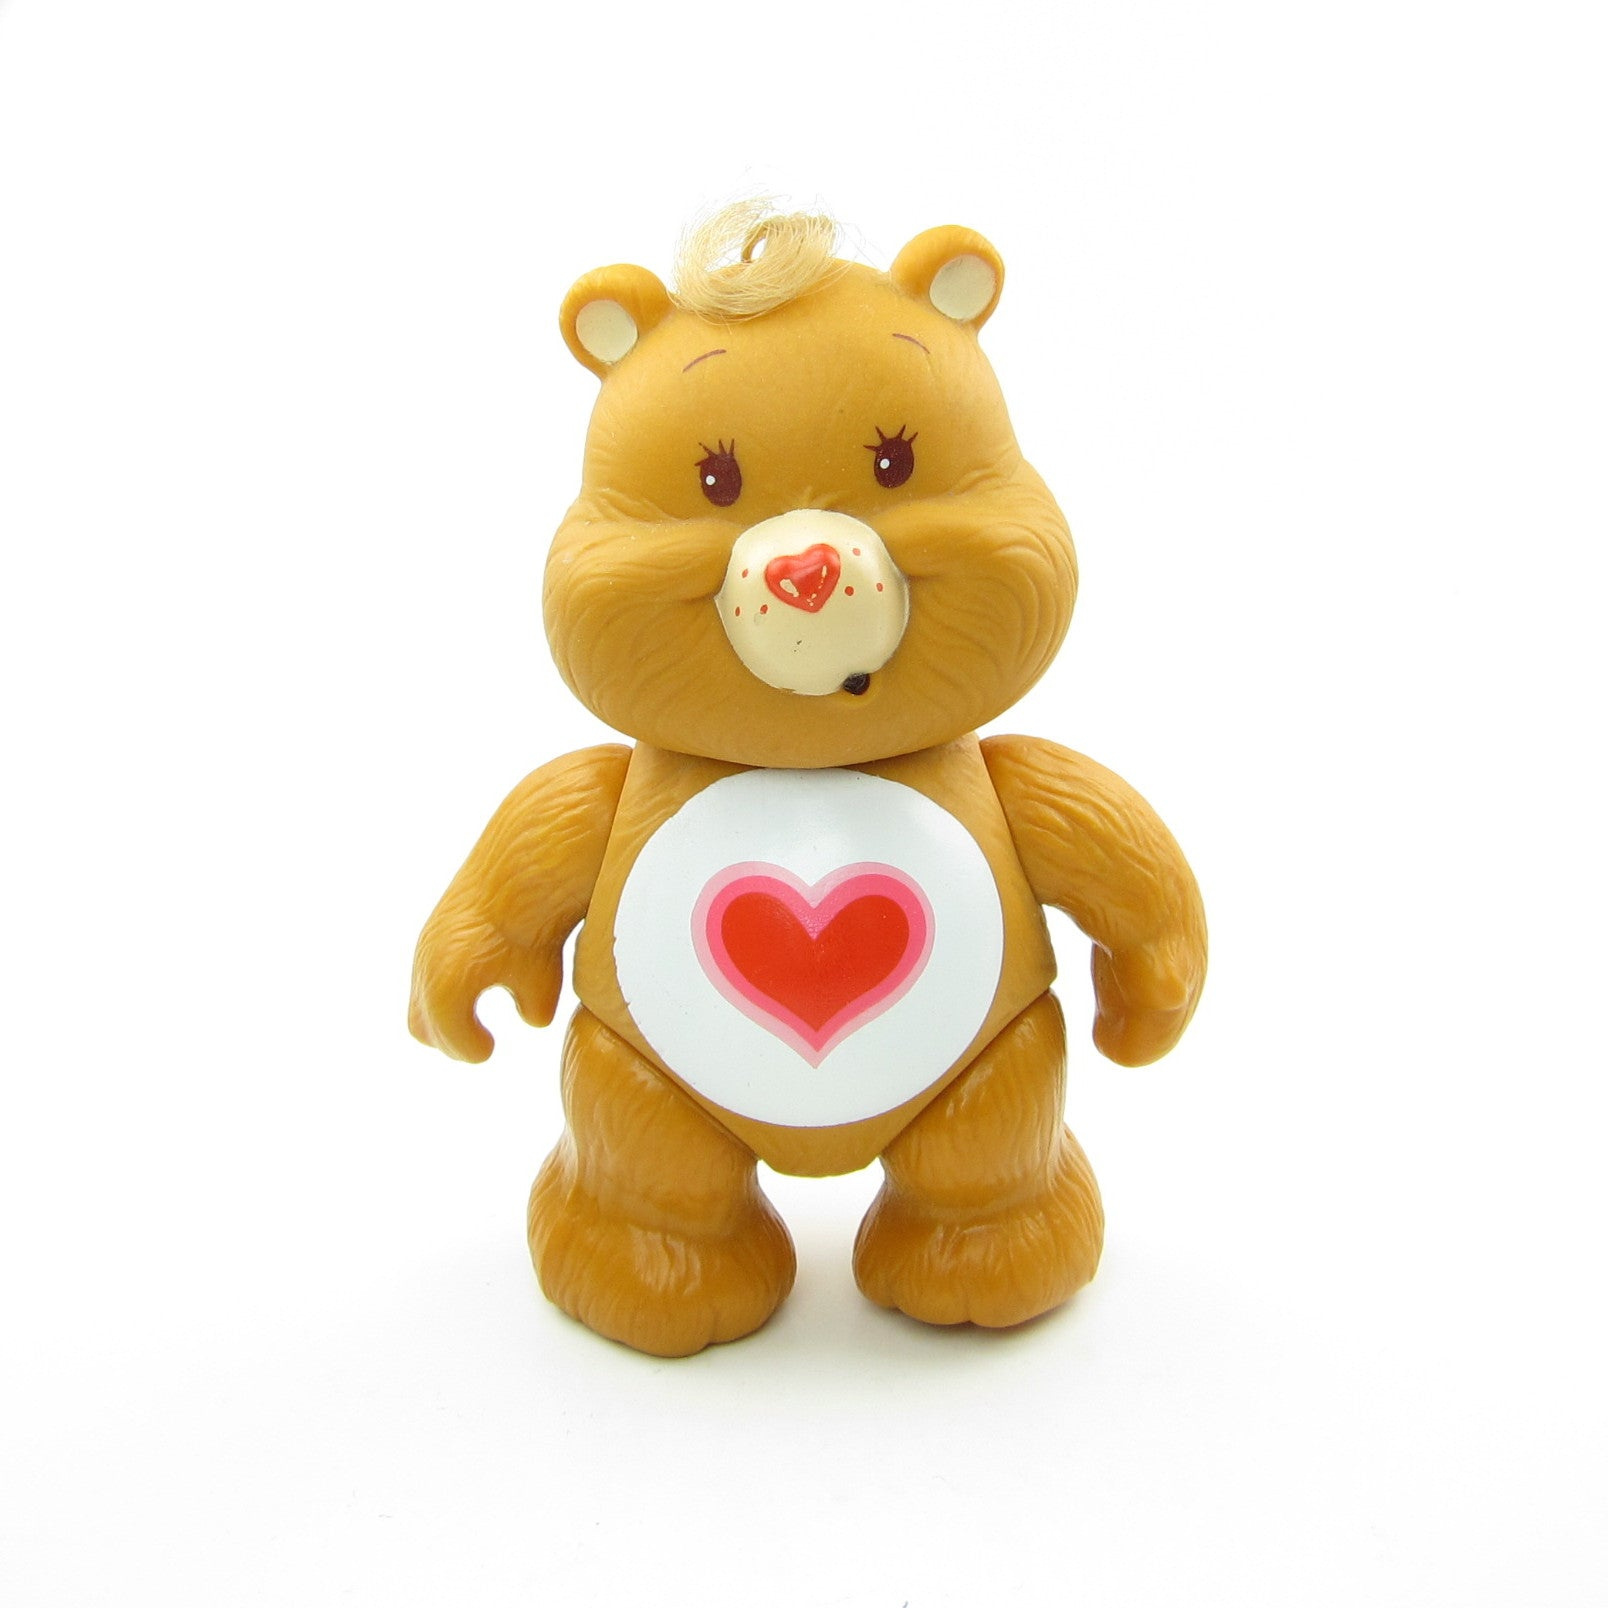 Tenderheart Bear 3 inch poseable Care Bears toy